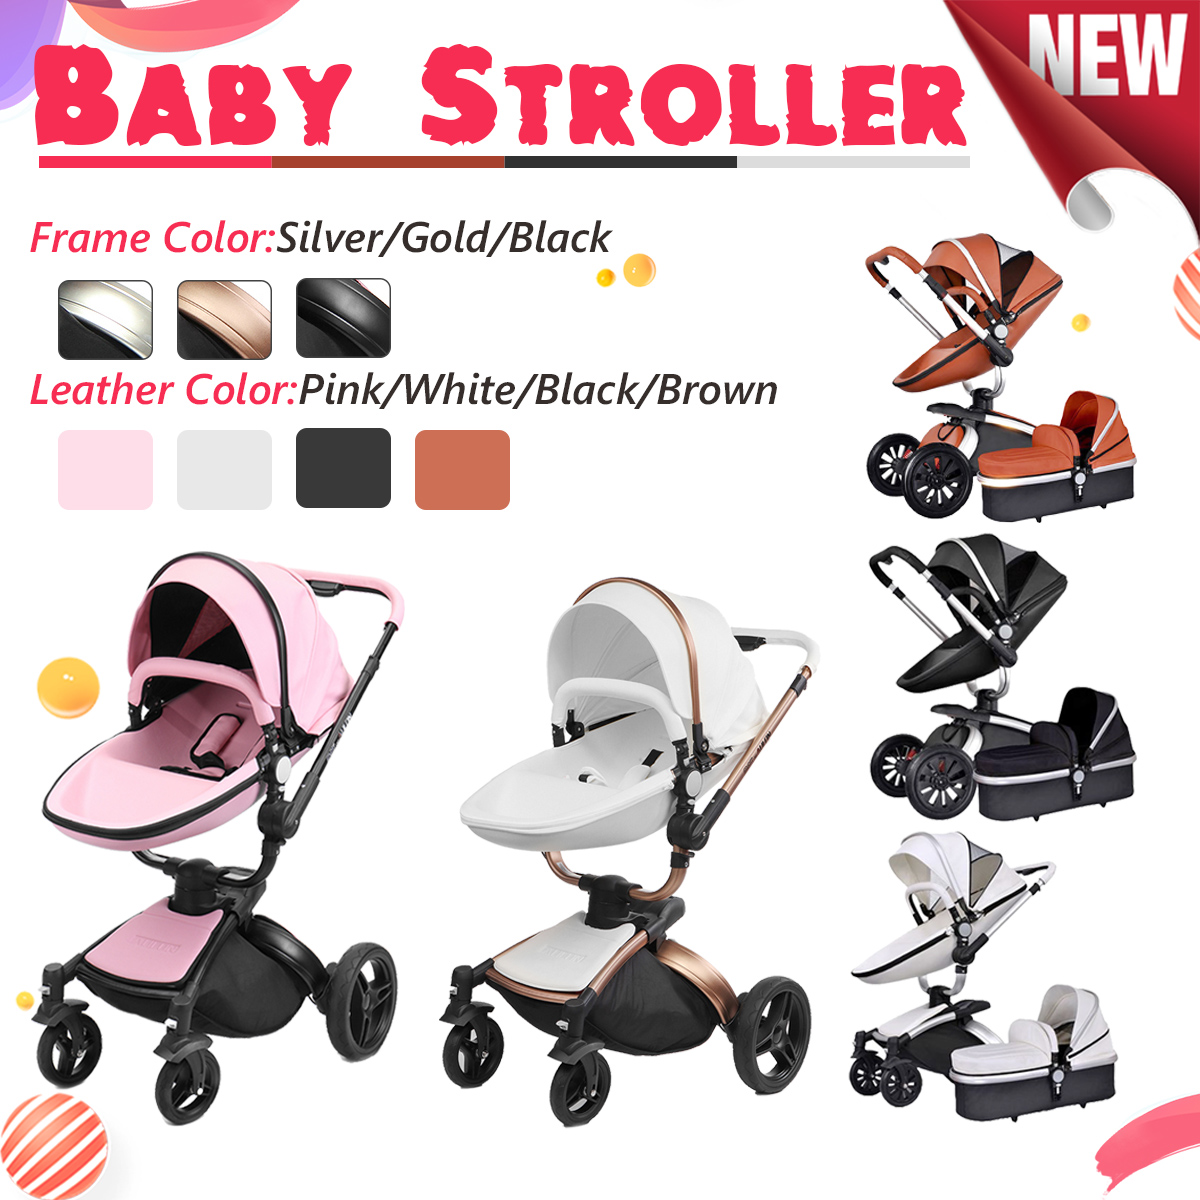 2 in 1/3 in 1 Baby stroller With Car Seat High Landscope Folding Baby Carriage For Child From 0-3 Years Prams For Newborns baby stroller 3 in 1 high landscape baby carriages for kids with baby car seat prams for newborns pushchair baby car